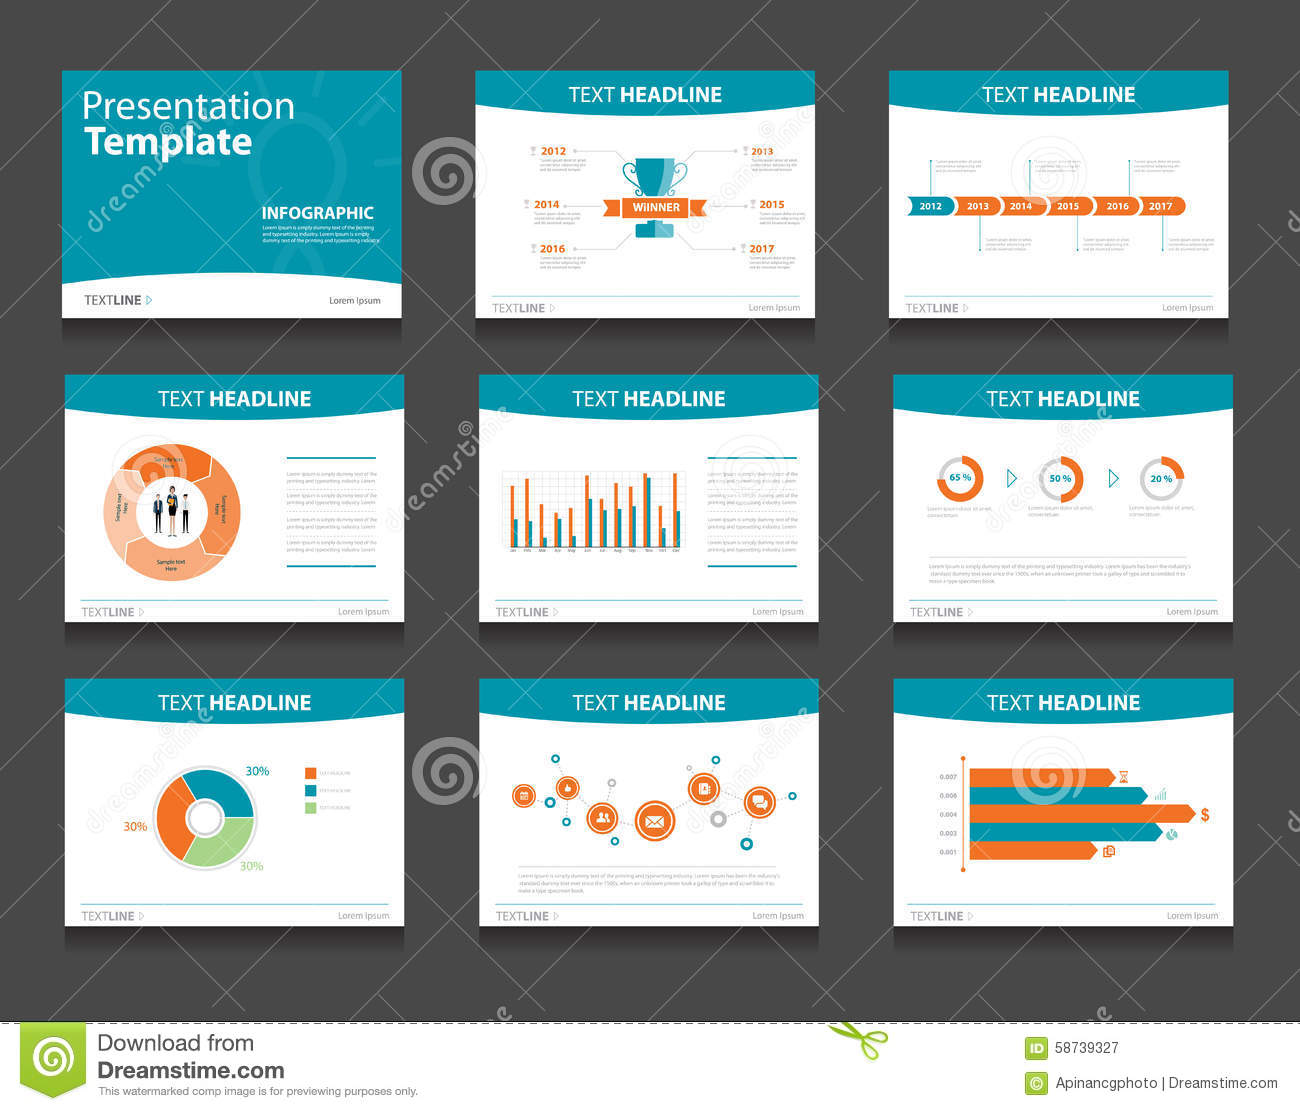 power point design - gse.bookbinder.co, Presentation templates